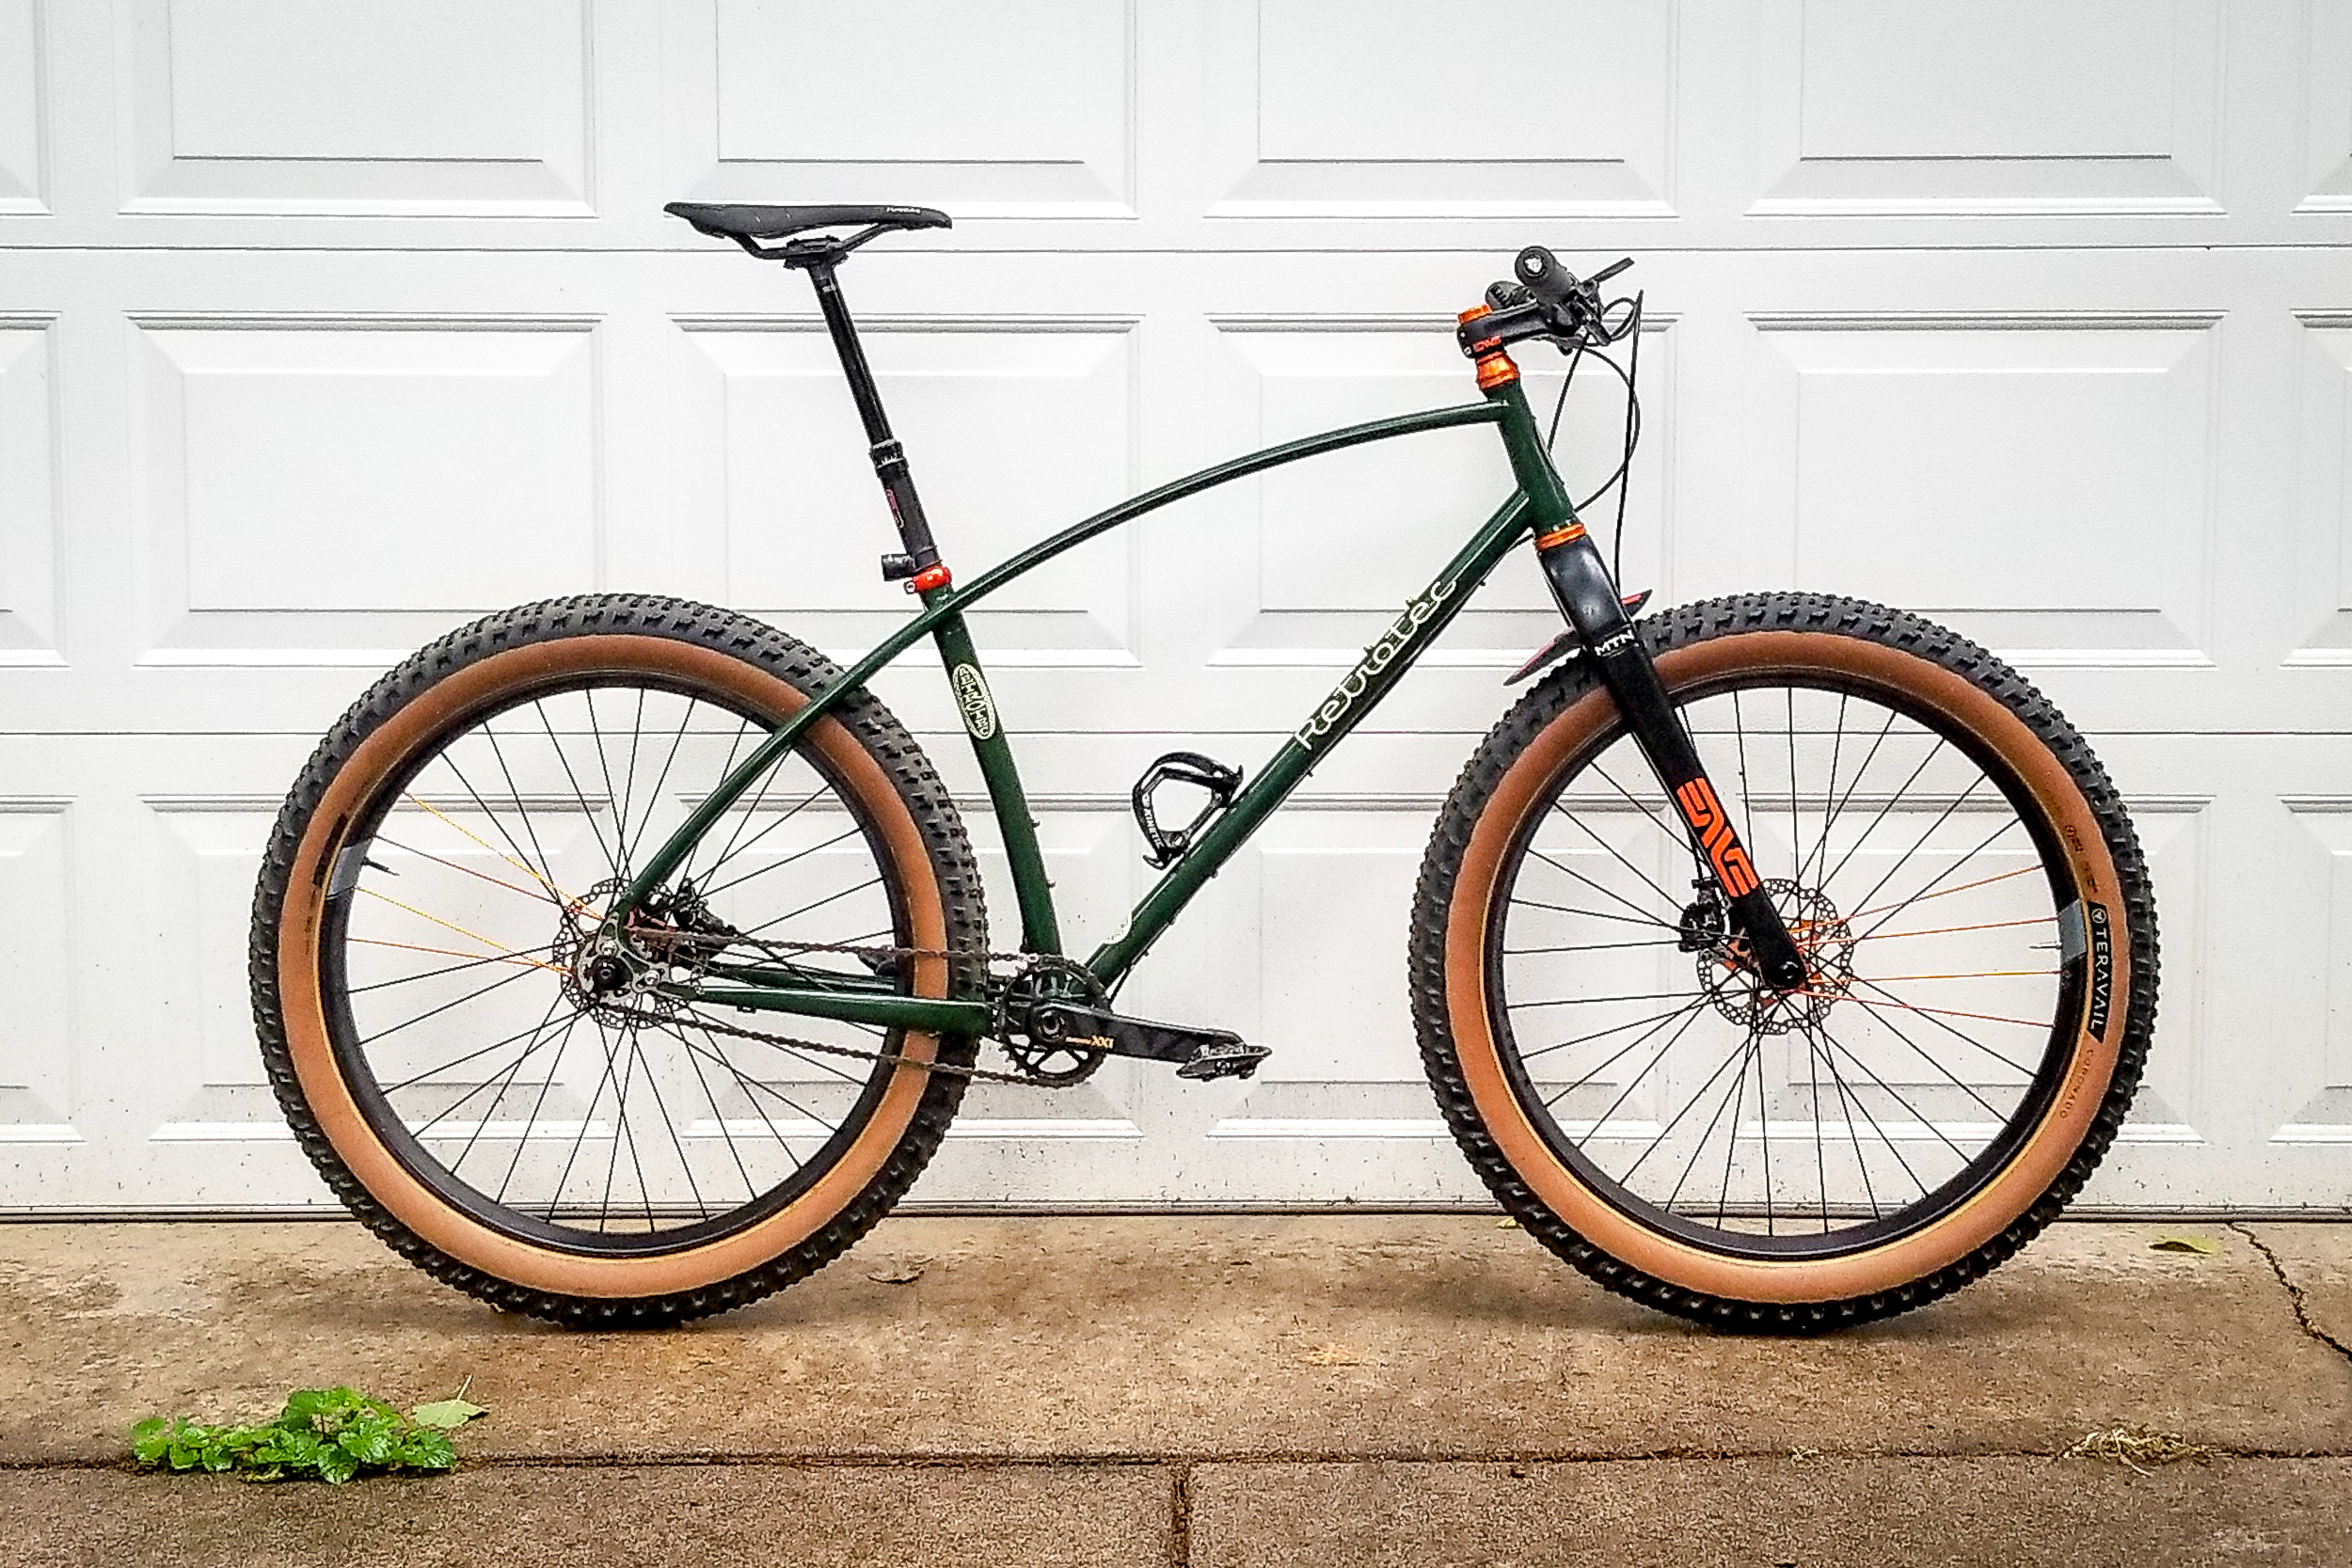 GearJunkie's Marketing Manager's custom build